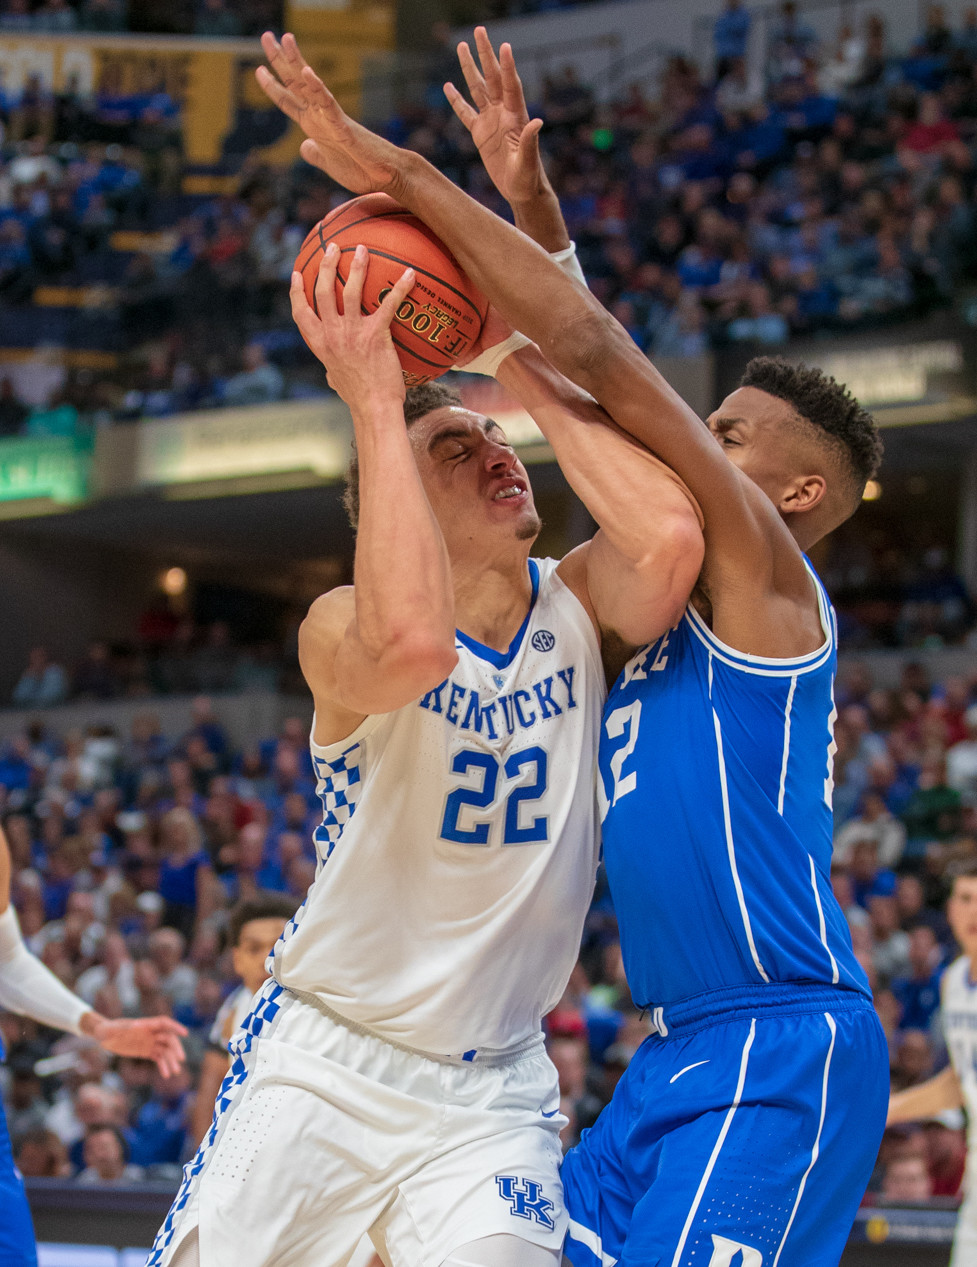 Reid Travis goes up for a shot in Kentucky's loss to Duke Tuesday night in Indianapolis. The Wildcats host Southern Illinois Friday night at Rupp Arena. (Kentucky Sports Report LLC/Jeff Houchin)